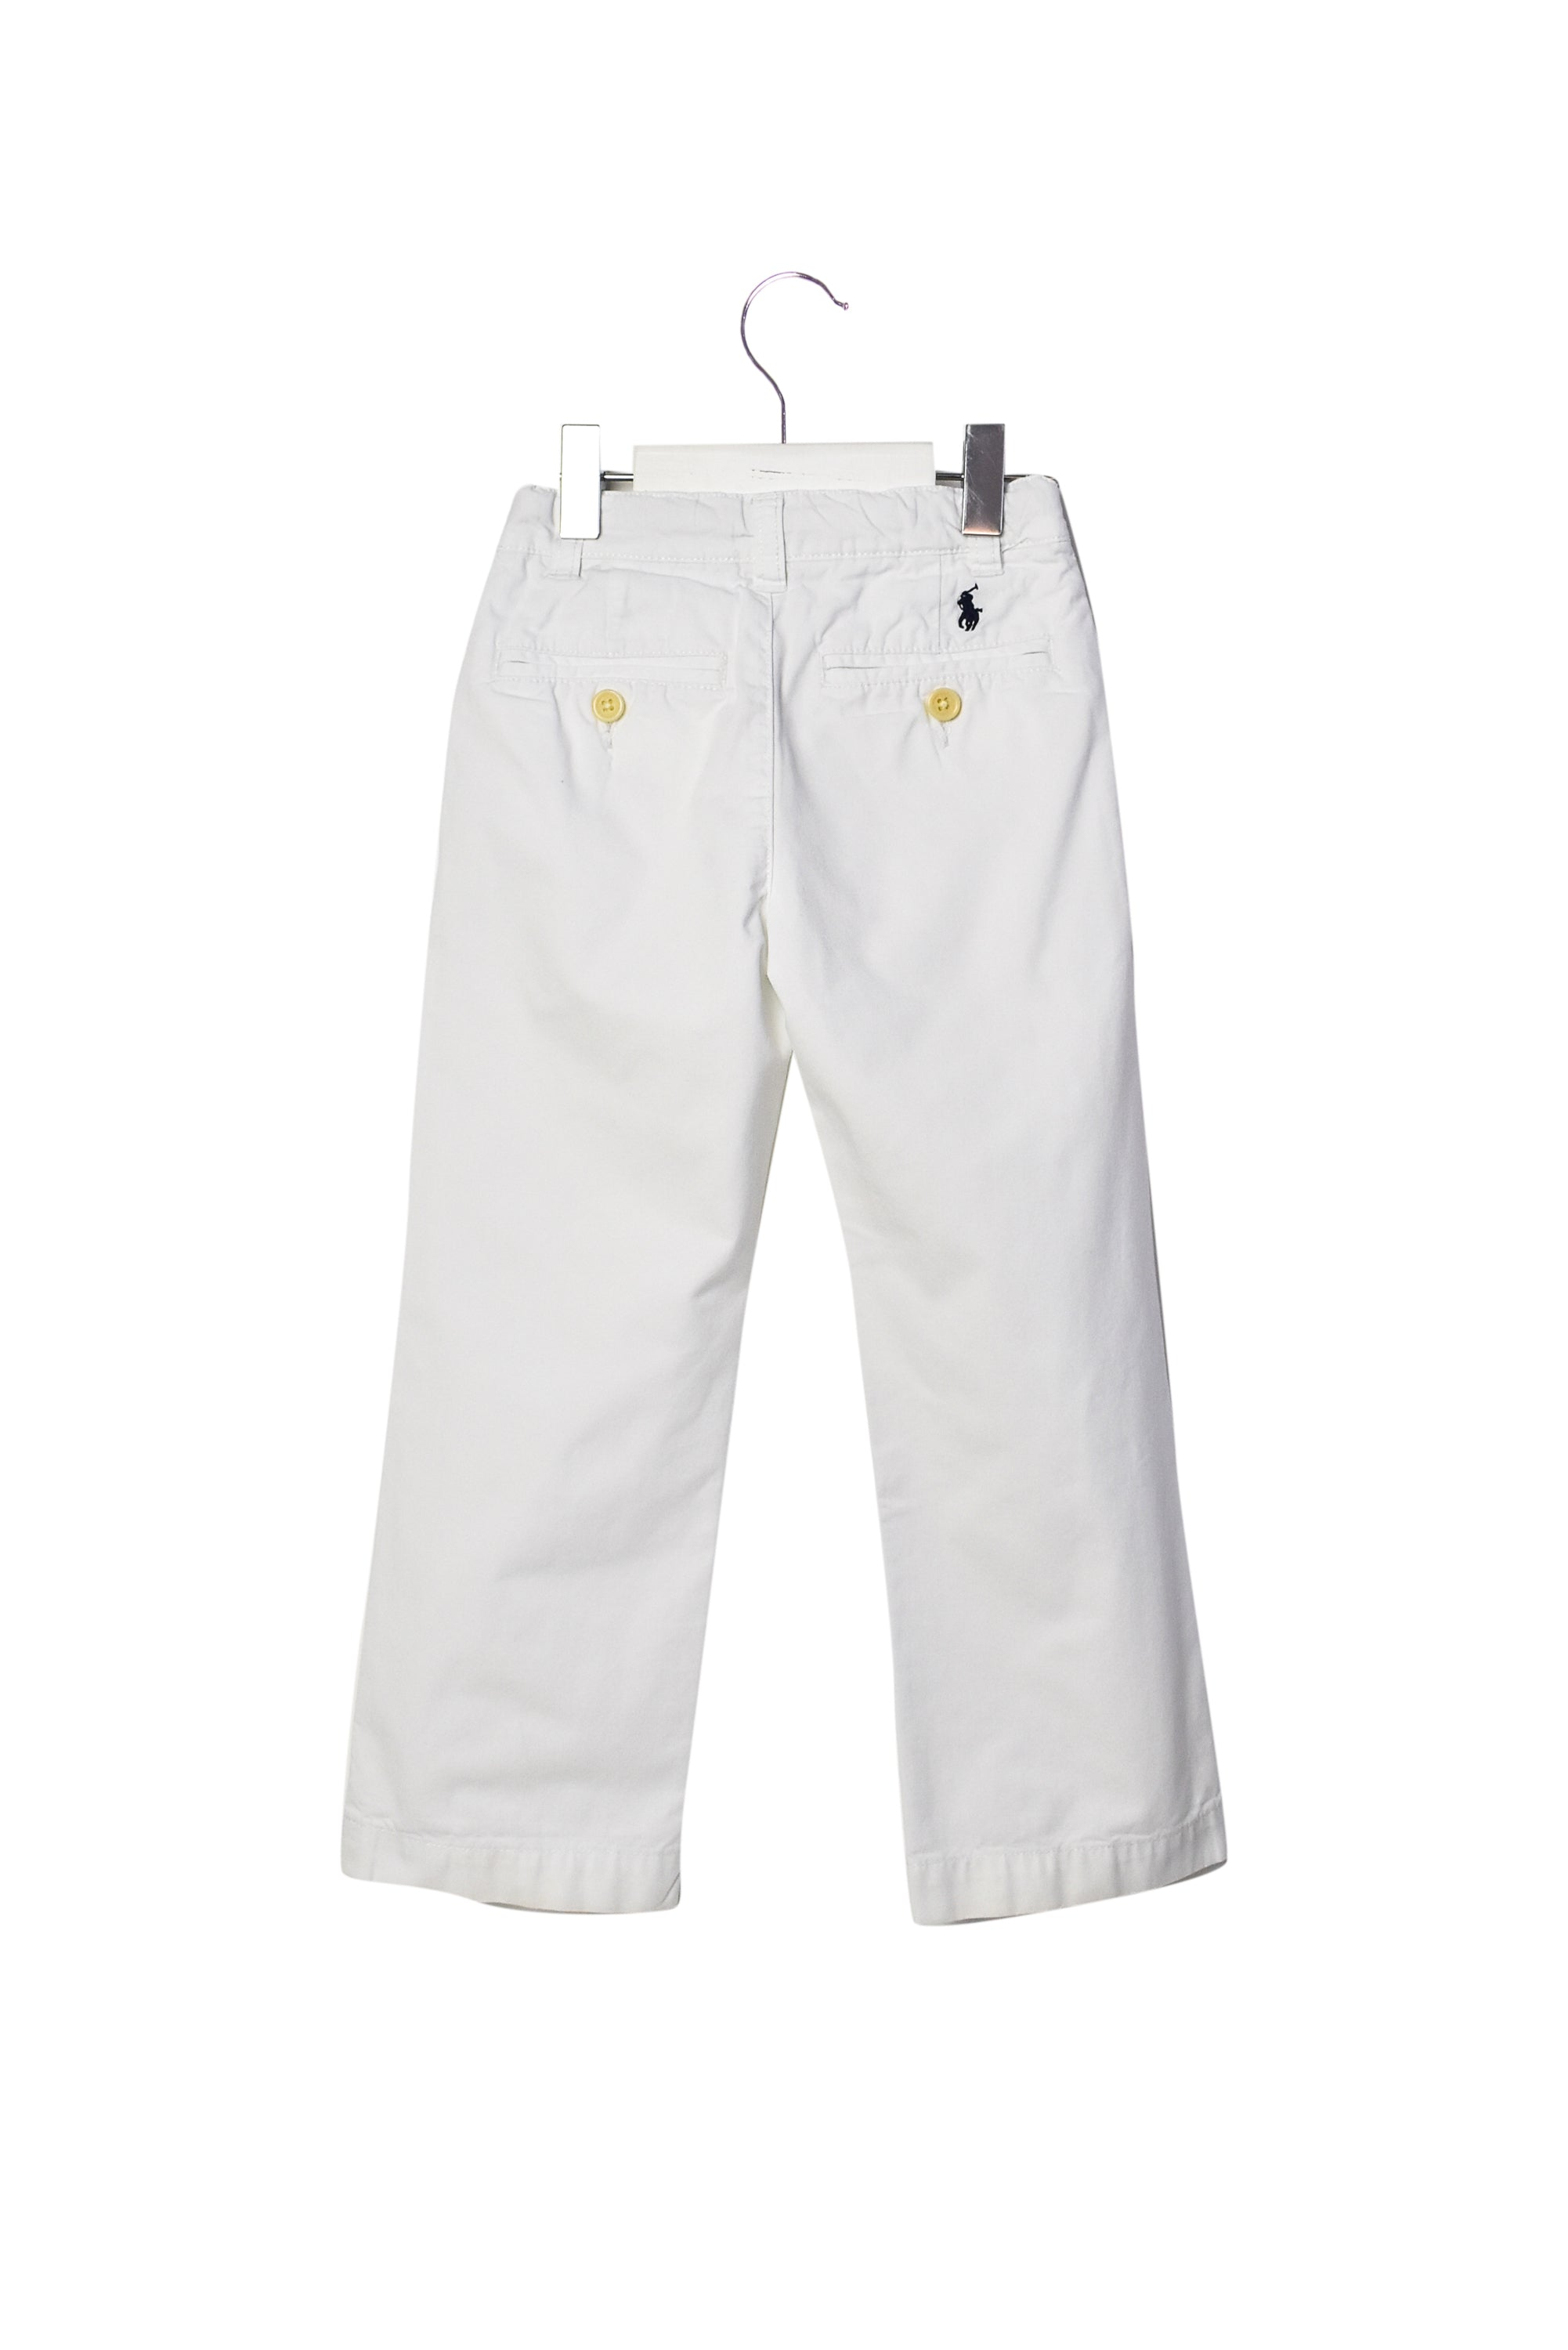 10006923 Polo Ralph Lauren Kids~ Pants 4T at Retykle